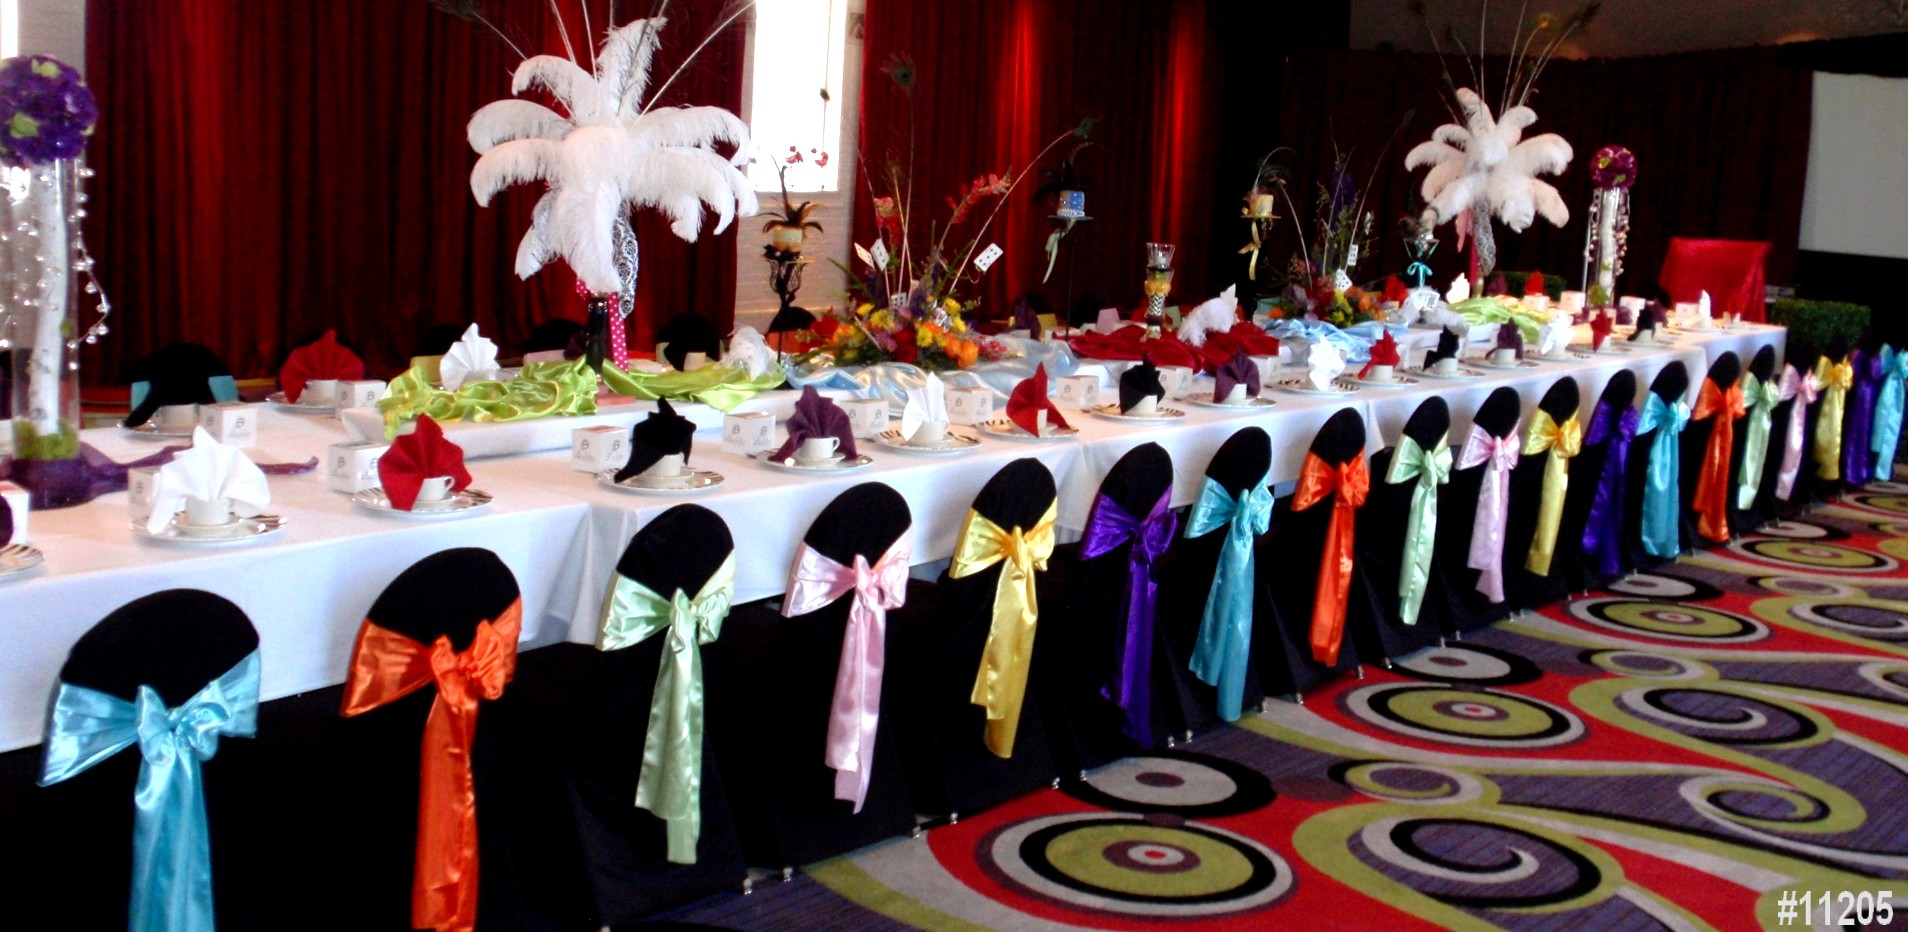 DC chair cover rentals many colors 11205 Chair cover rentals